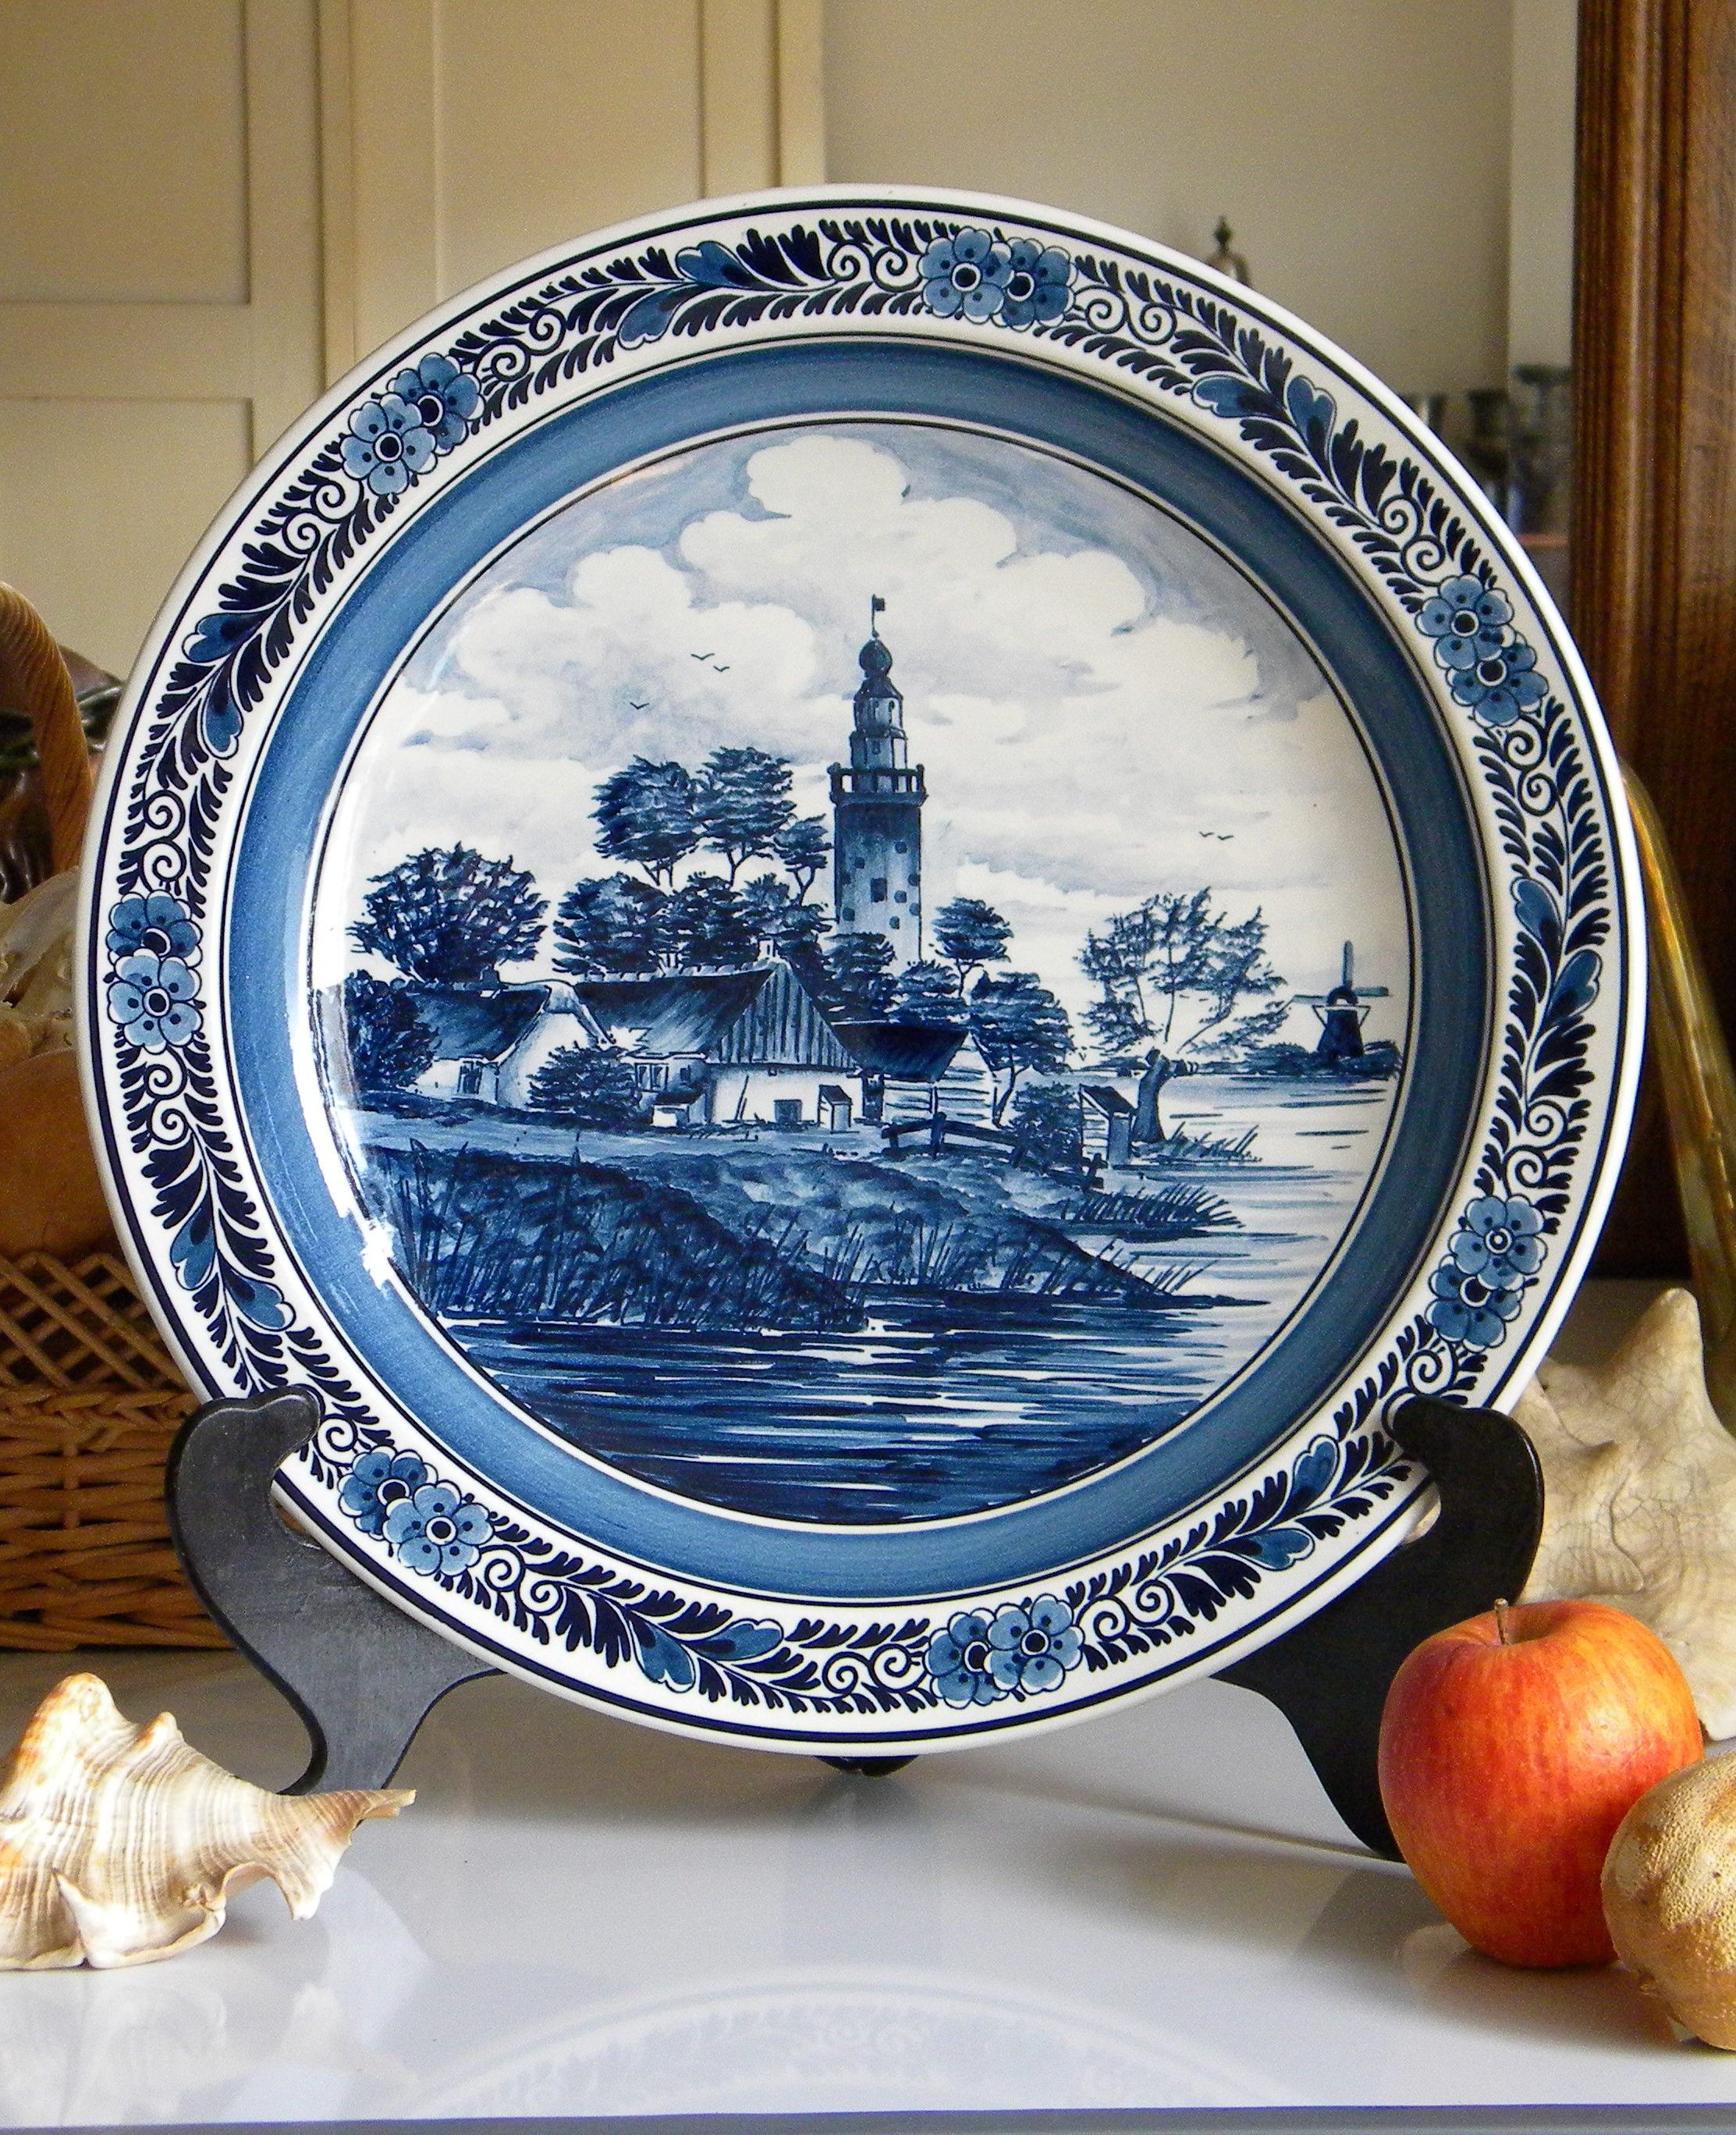 Blue Decorative Wall Plates Amusing Large Delft Blue Royal Goedewaagen Gouda Holland Vintage Design Ideas